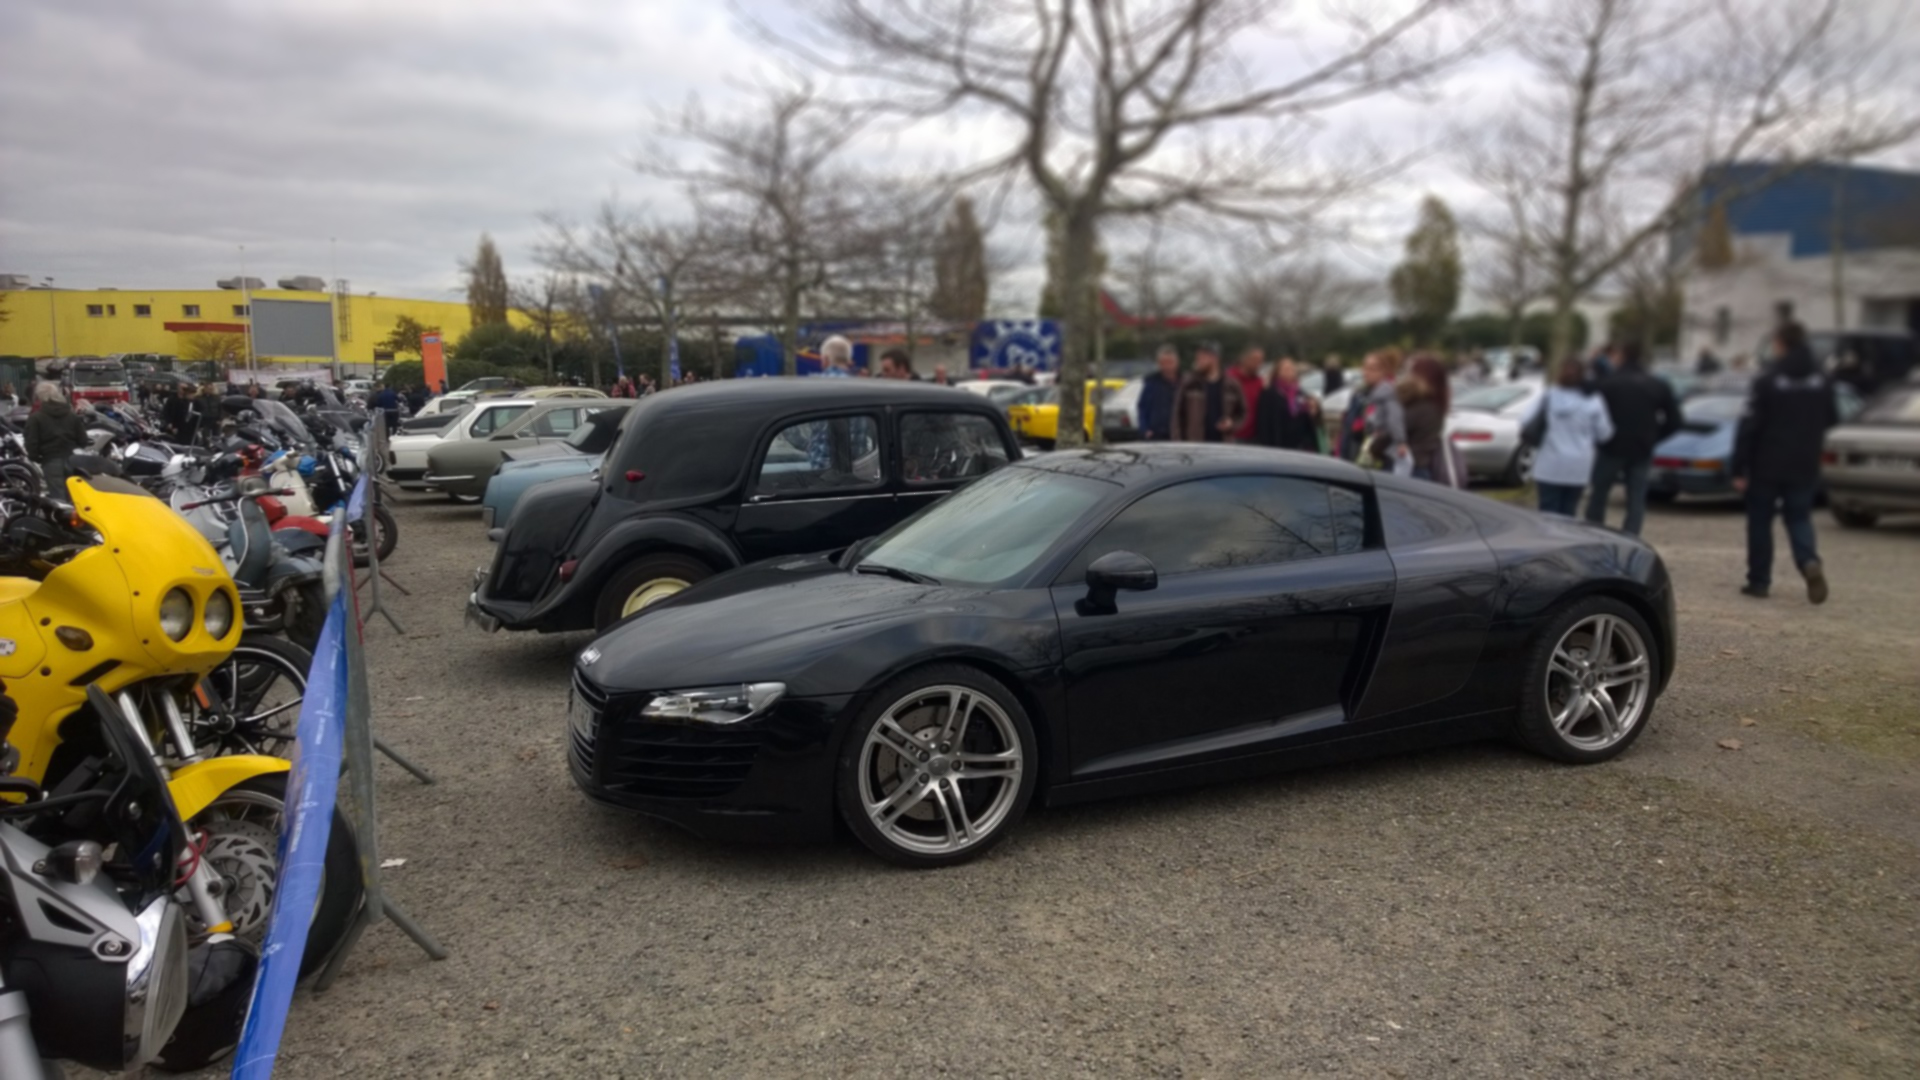 DM photo - Audi R8 - profil / side-face - Ouest Motors Festival - 2015 - Lorient